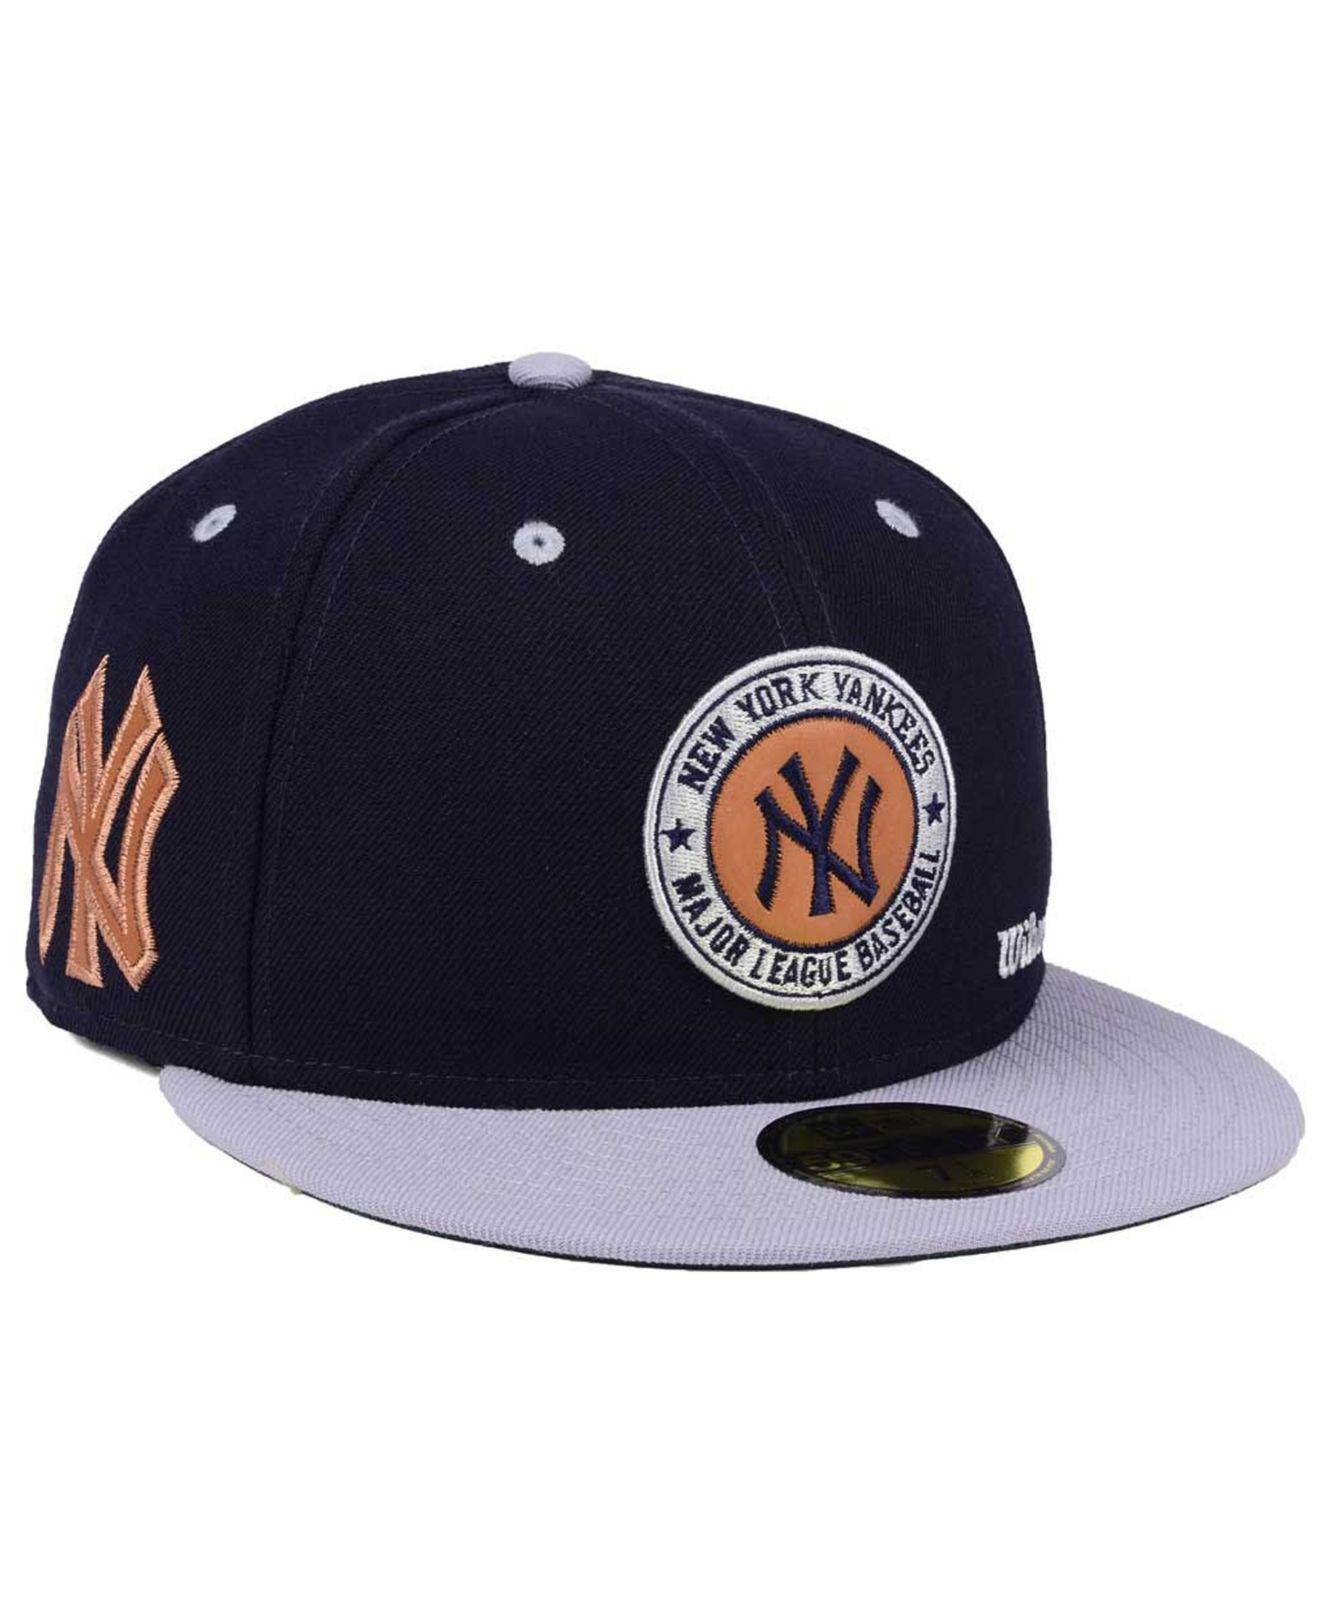 ad2f013b62c218 ... cheapest ktz. mens blue new york yankees x wilson circle patch 59fifty  fitted cap 5f783